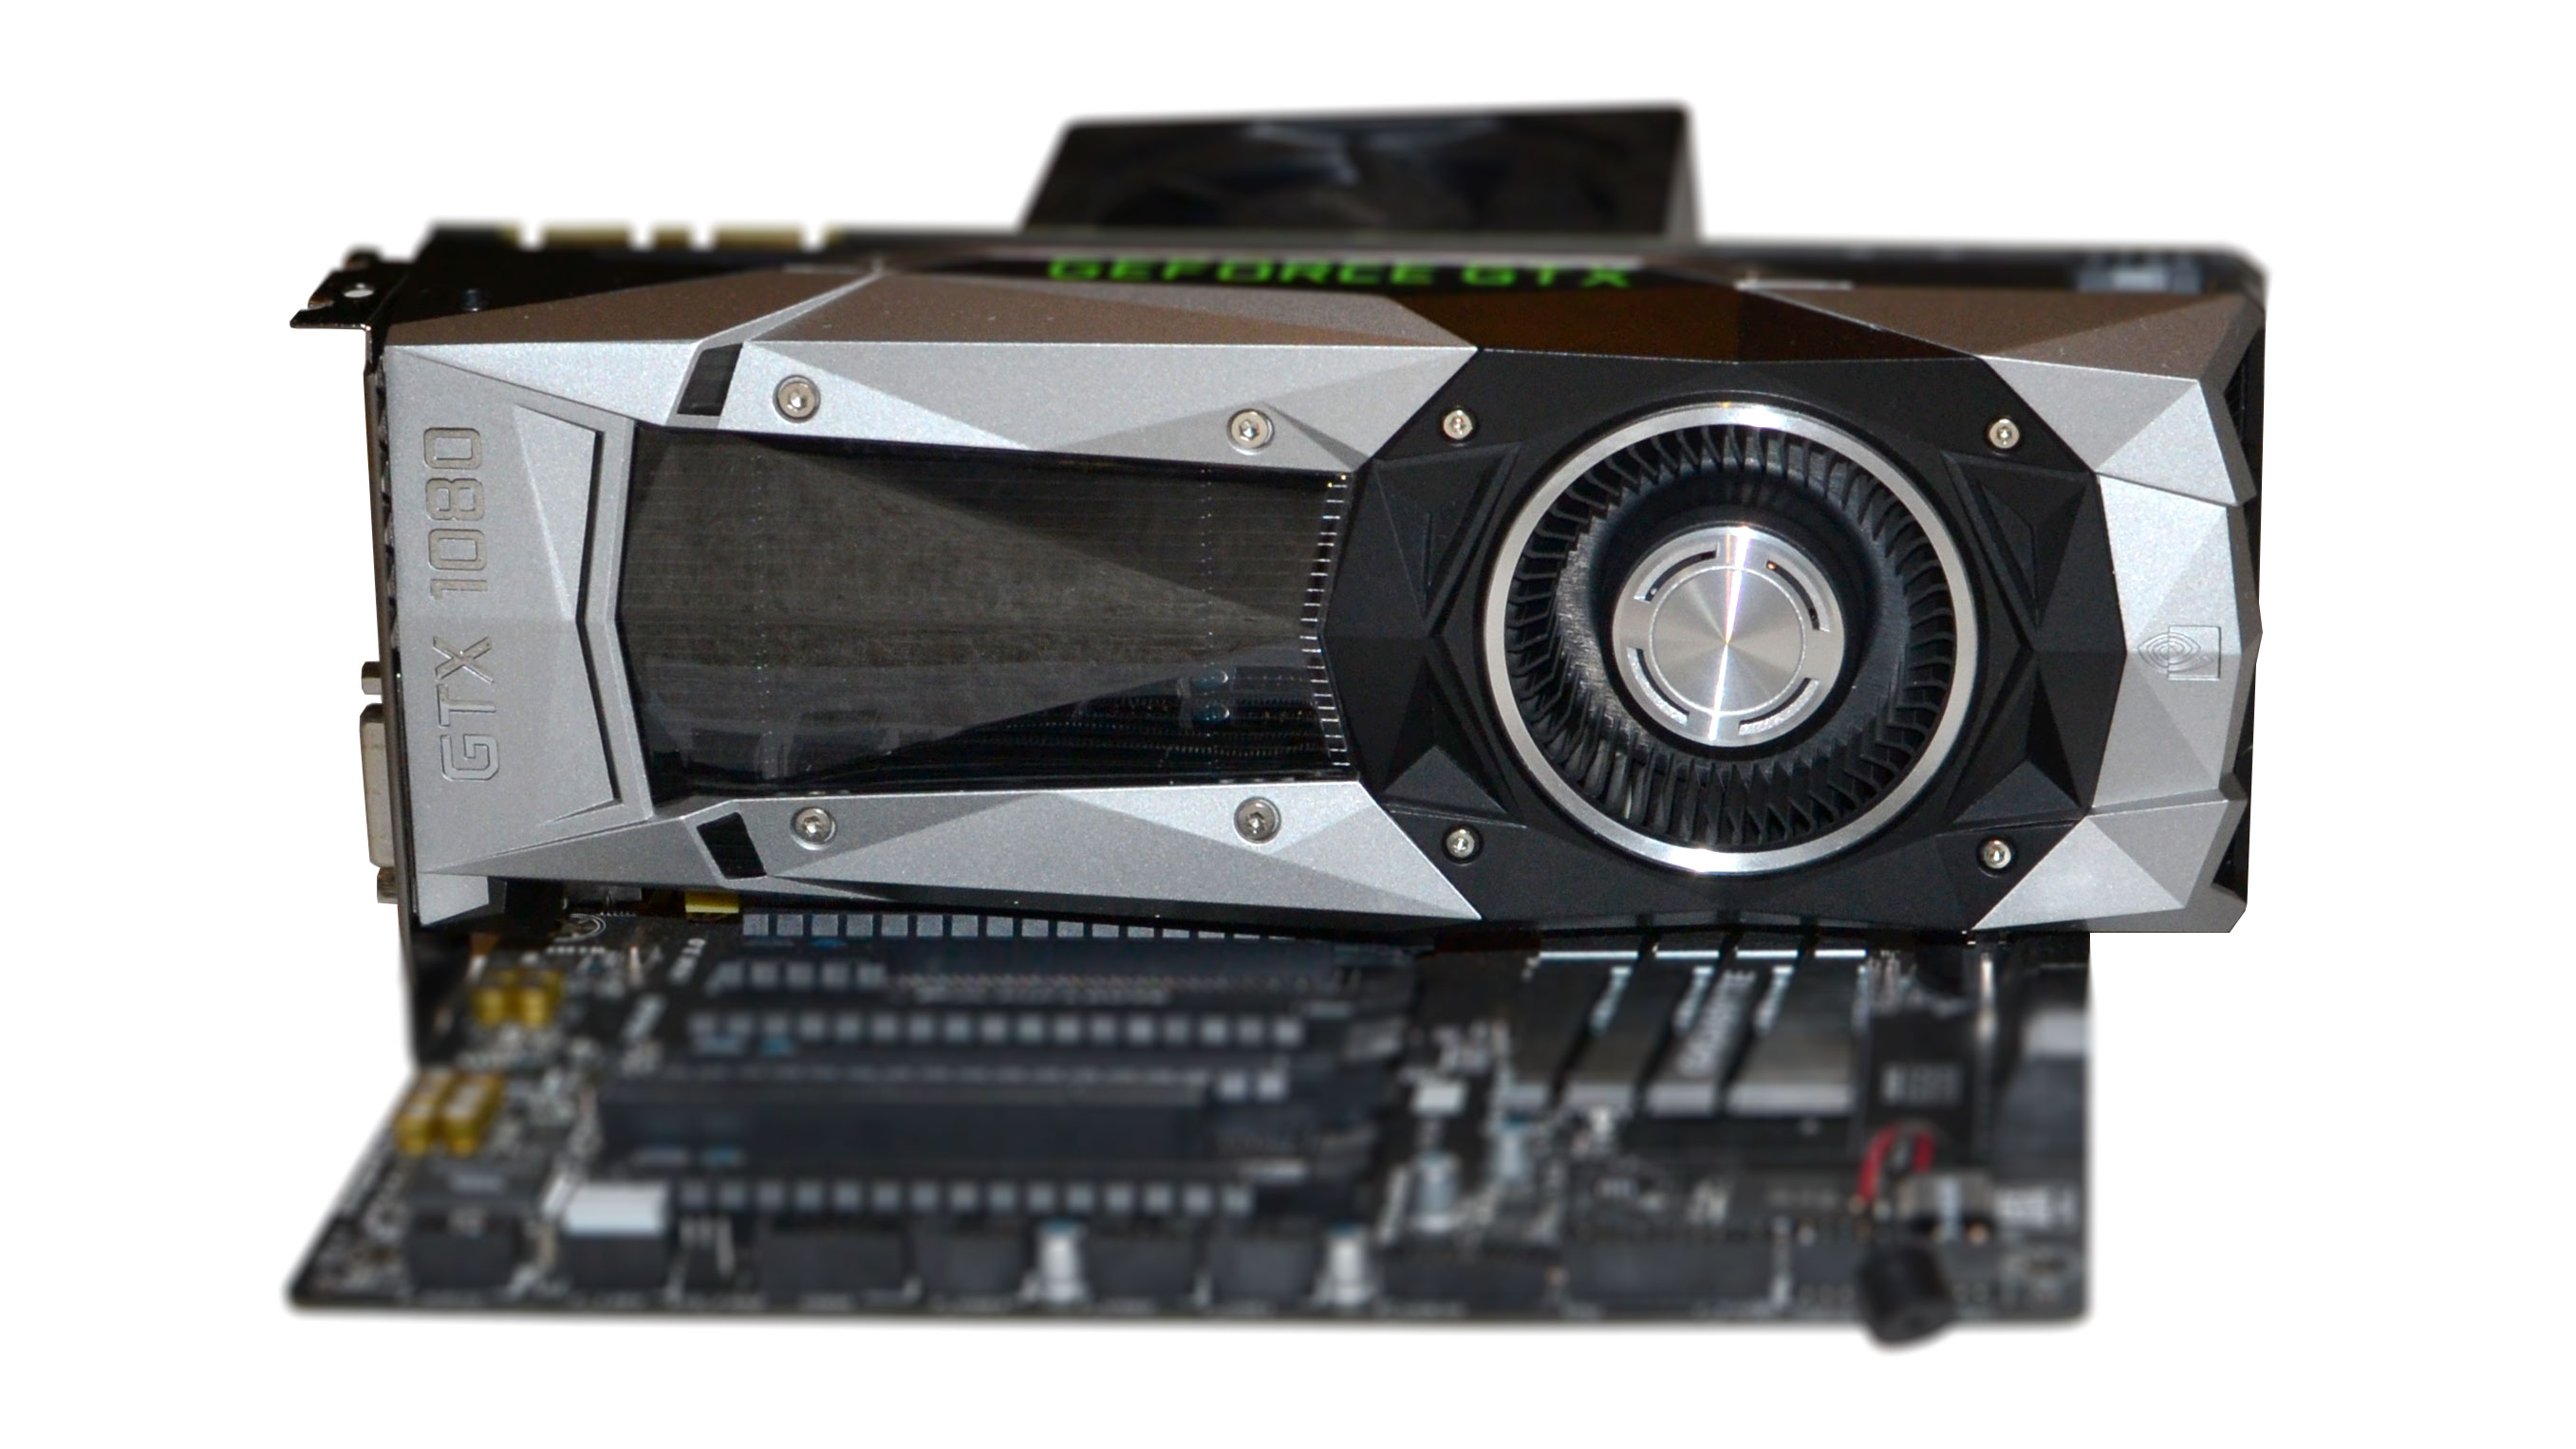 The idiot's guide to buying a graphics card